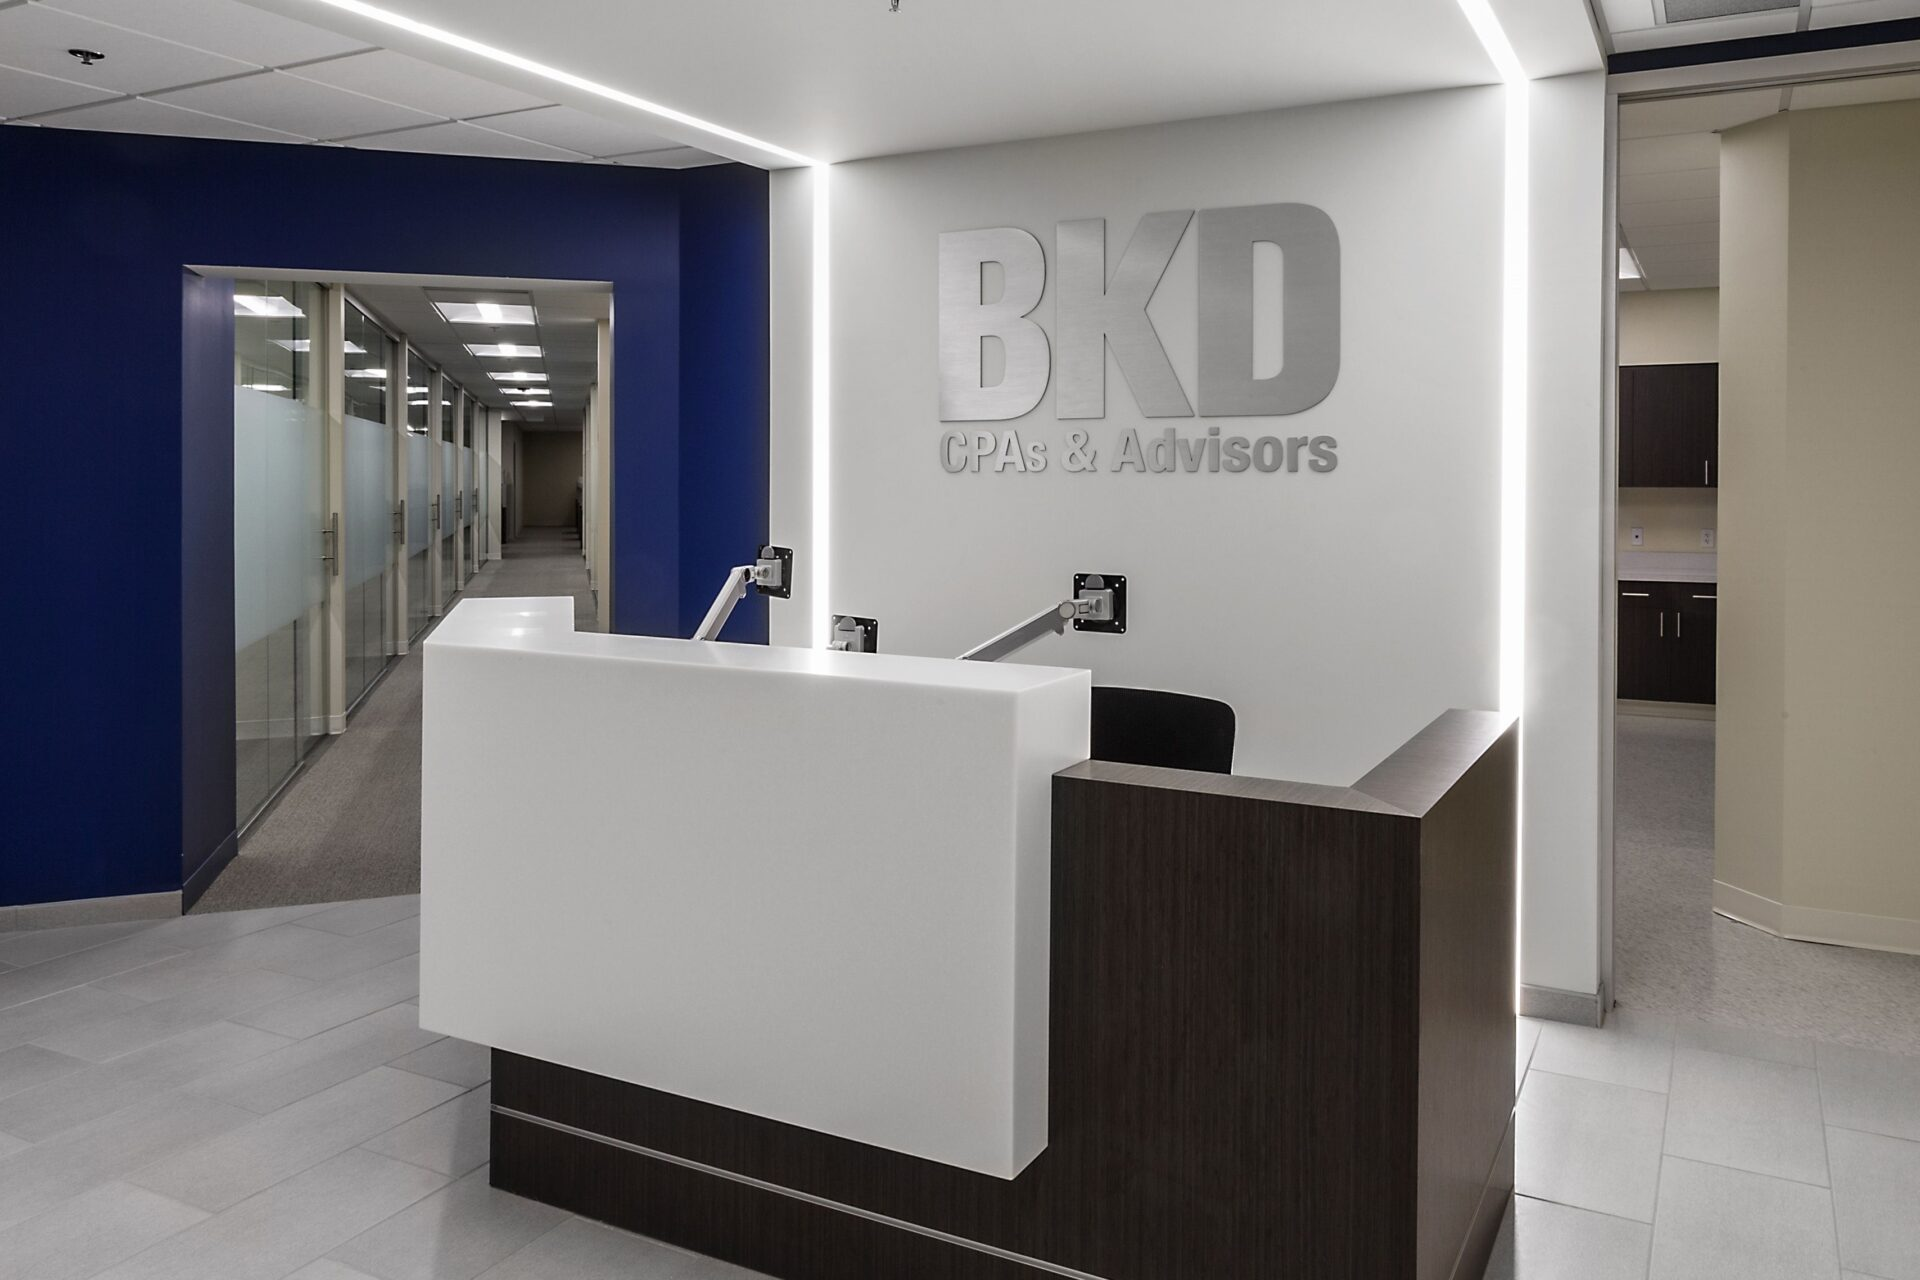 BKD CPAs & Advisors Tenant Improvement